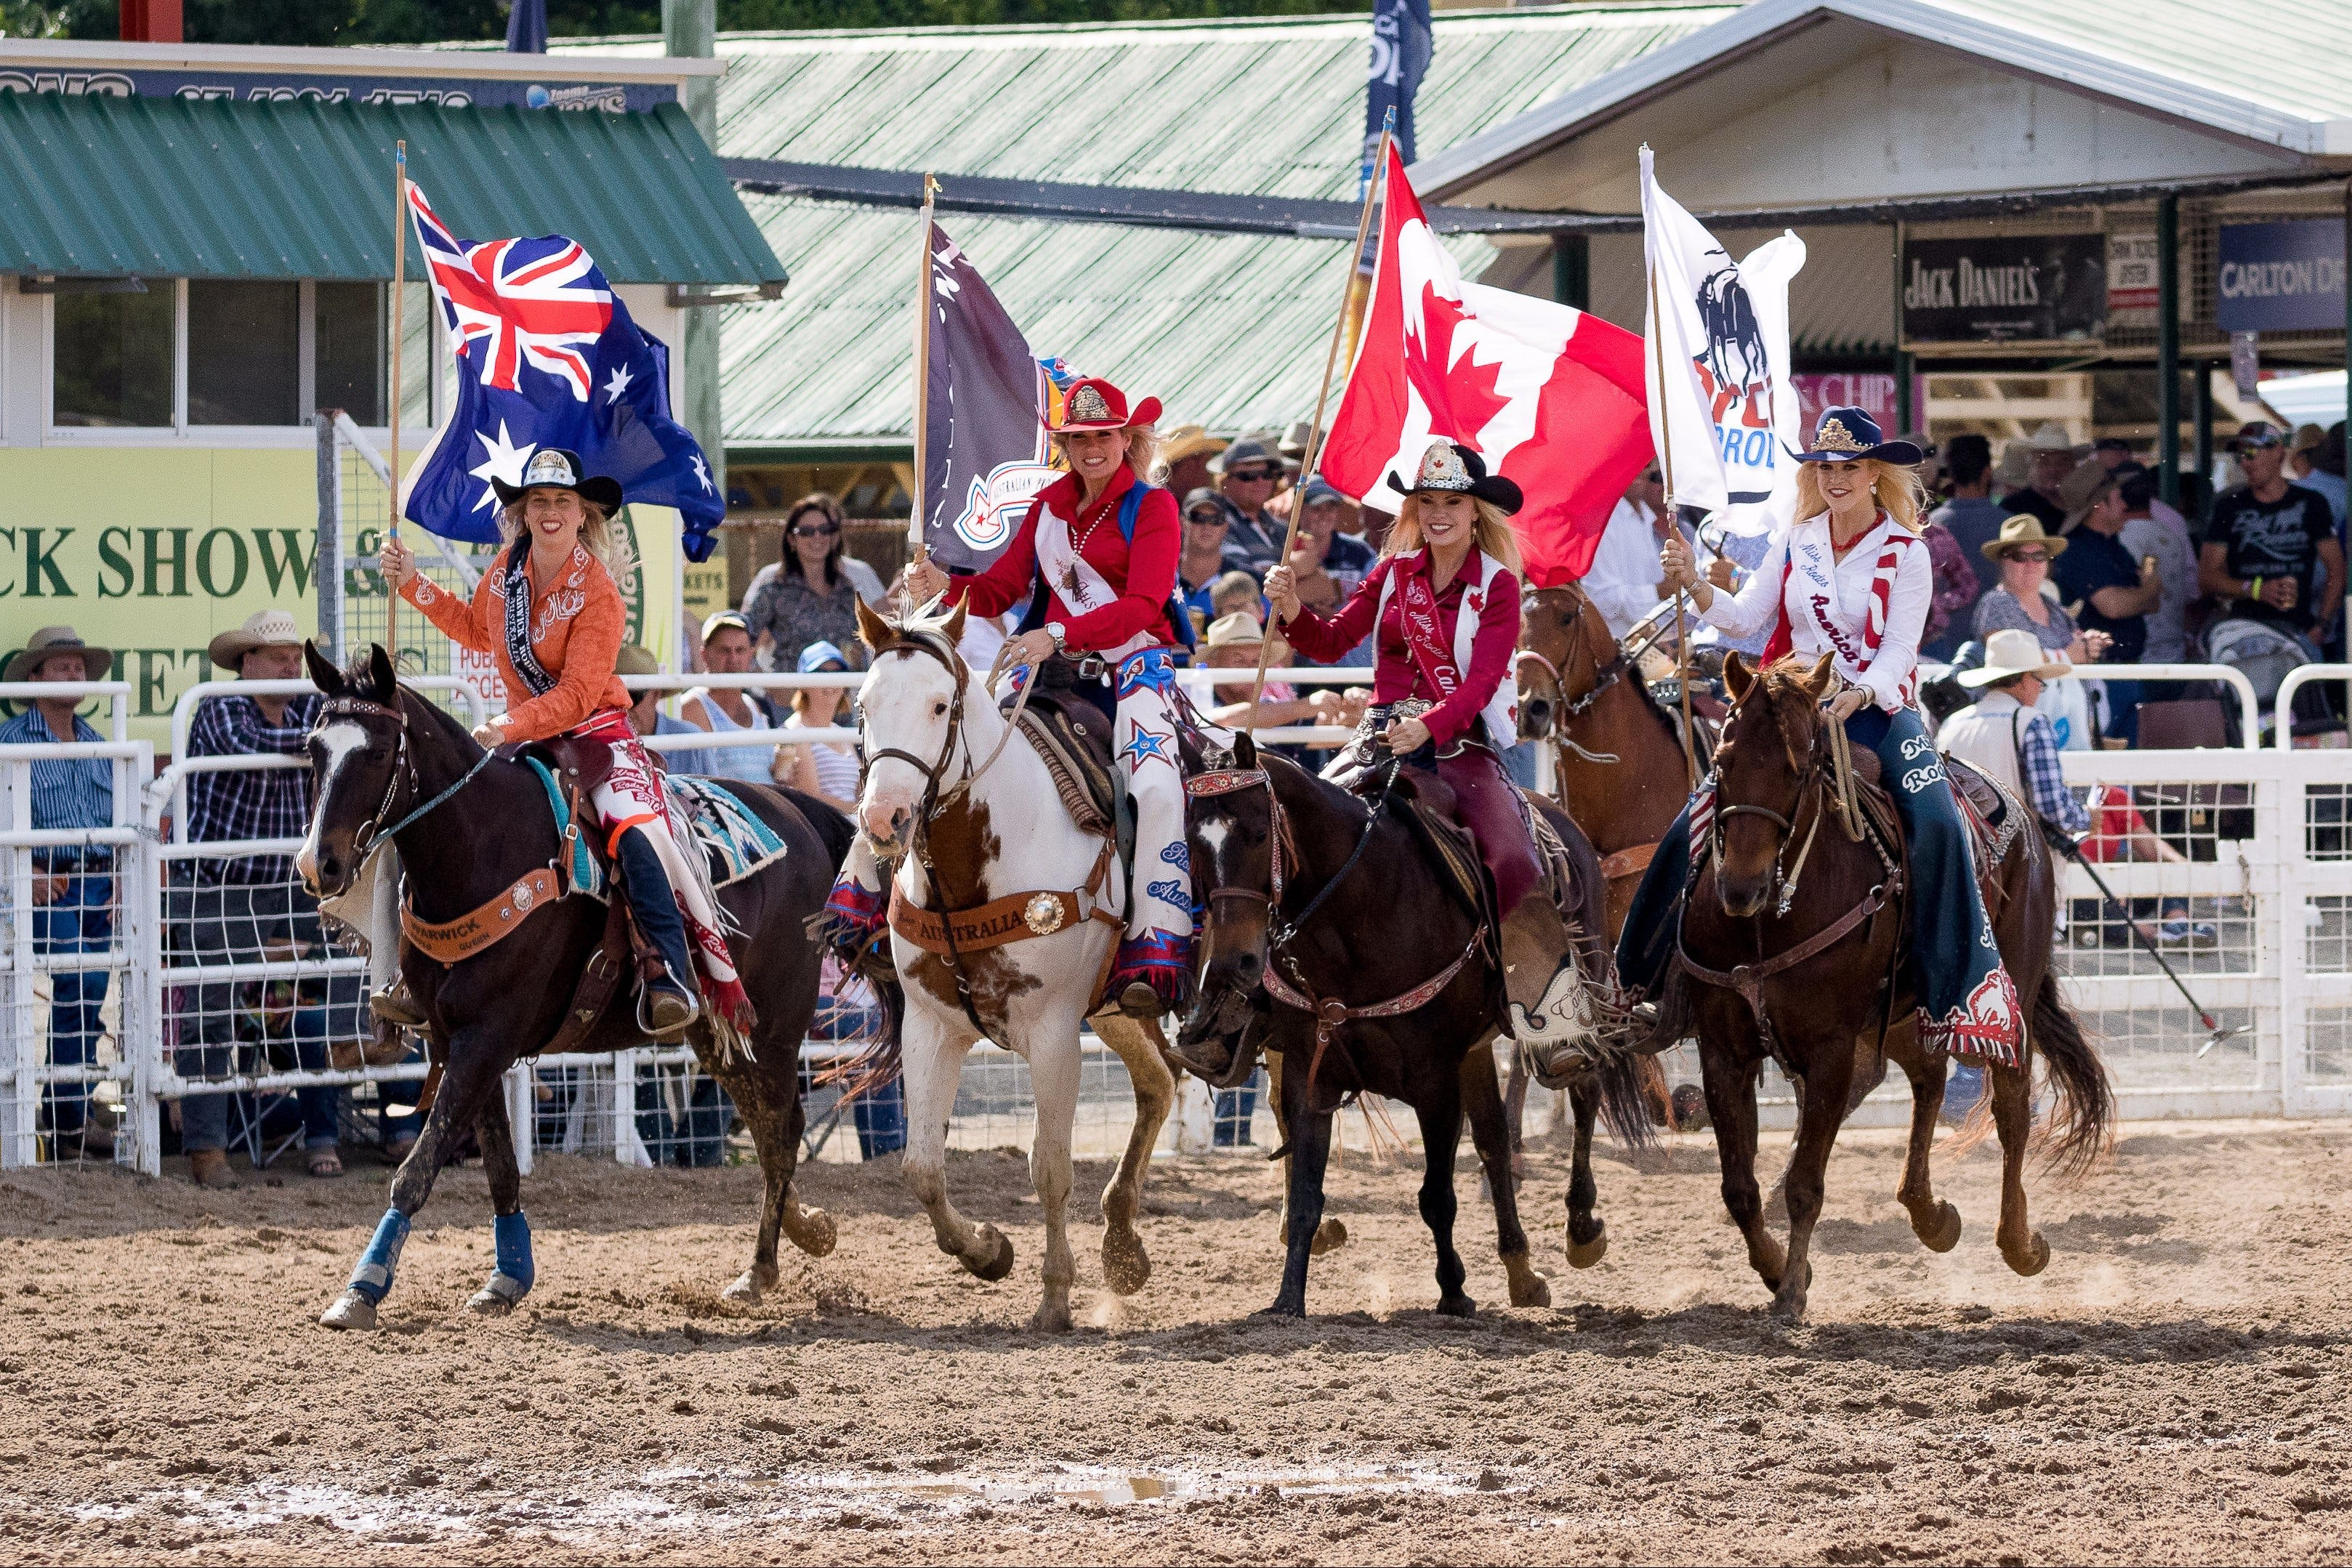 Warwick Rodeo National APRA National Finals and Warwick Gold Cup Campdraft - Tourism Canberra